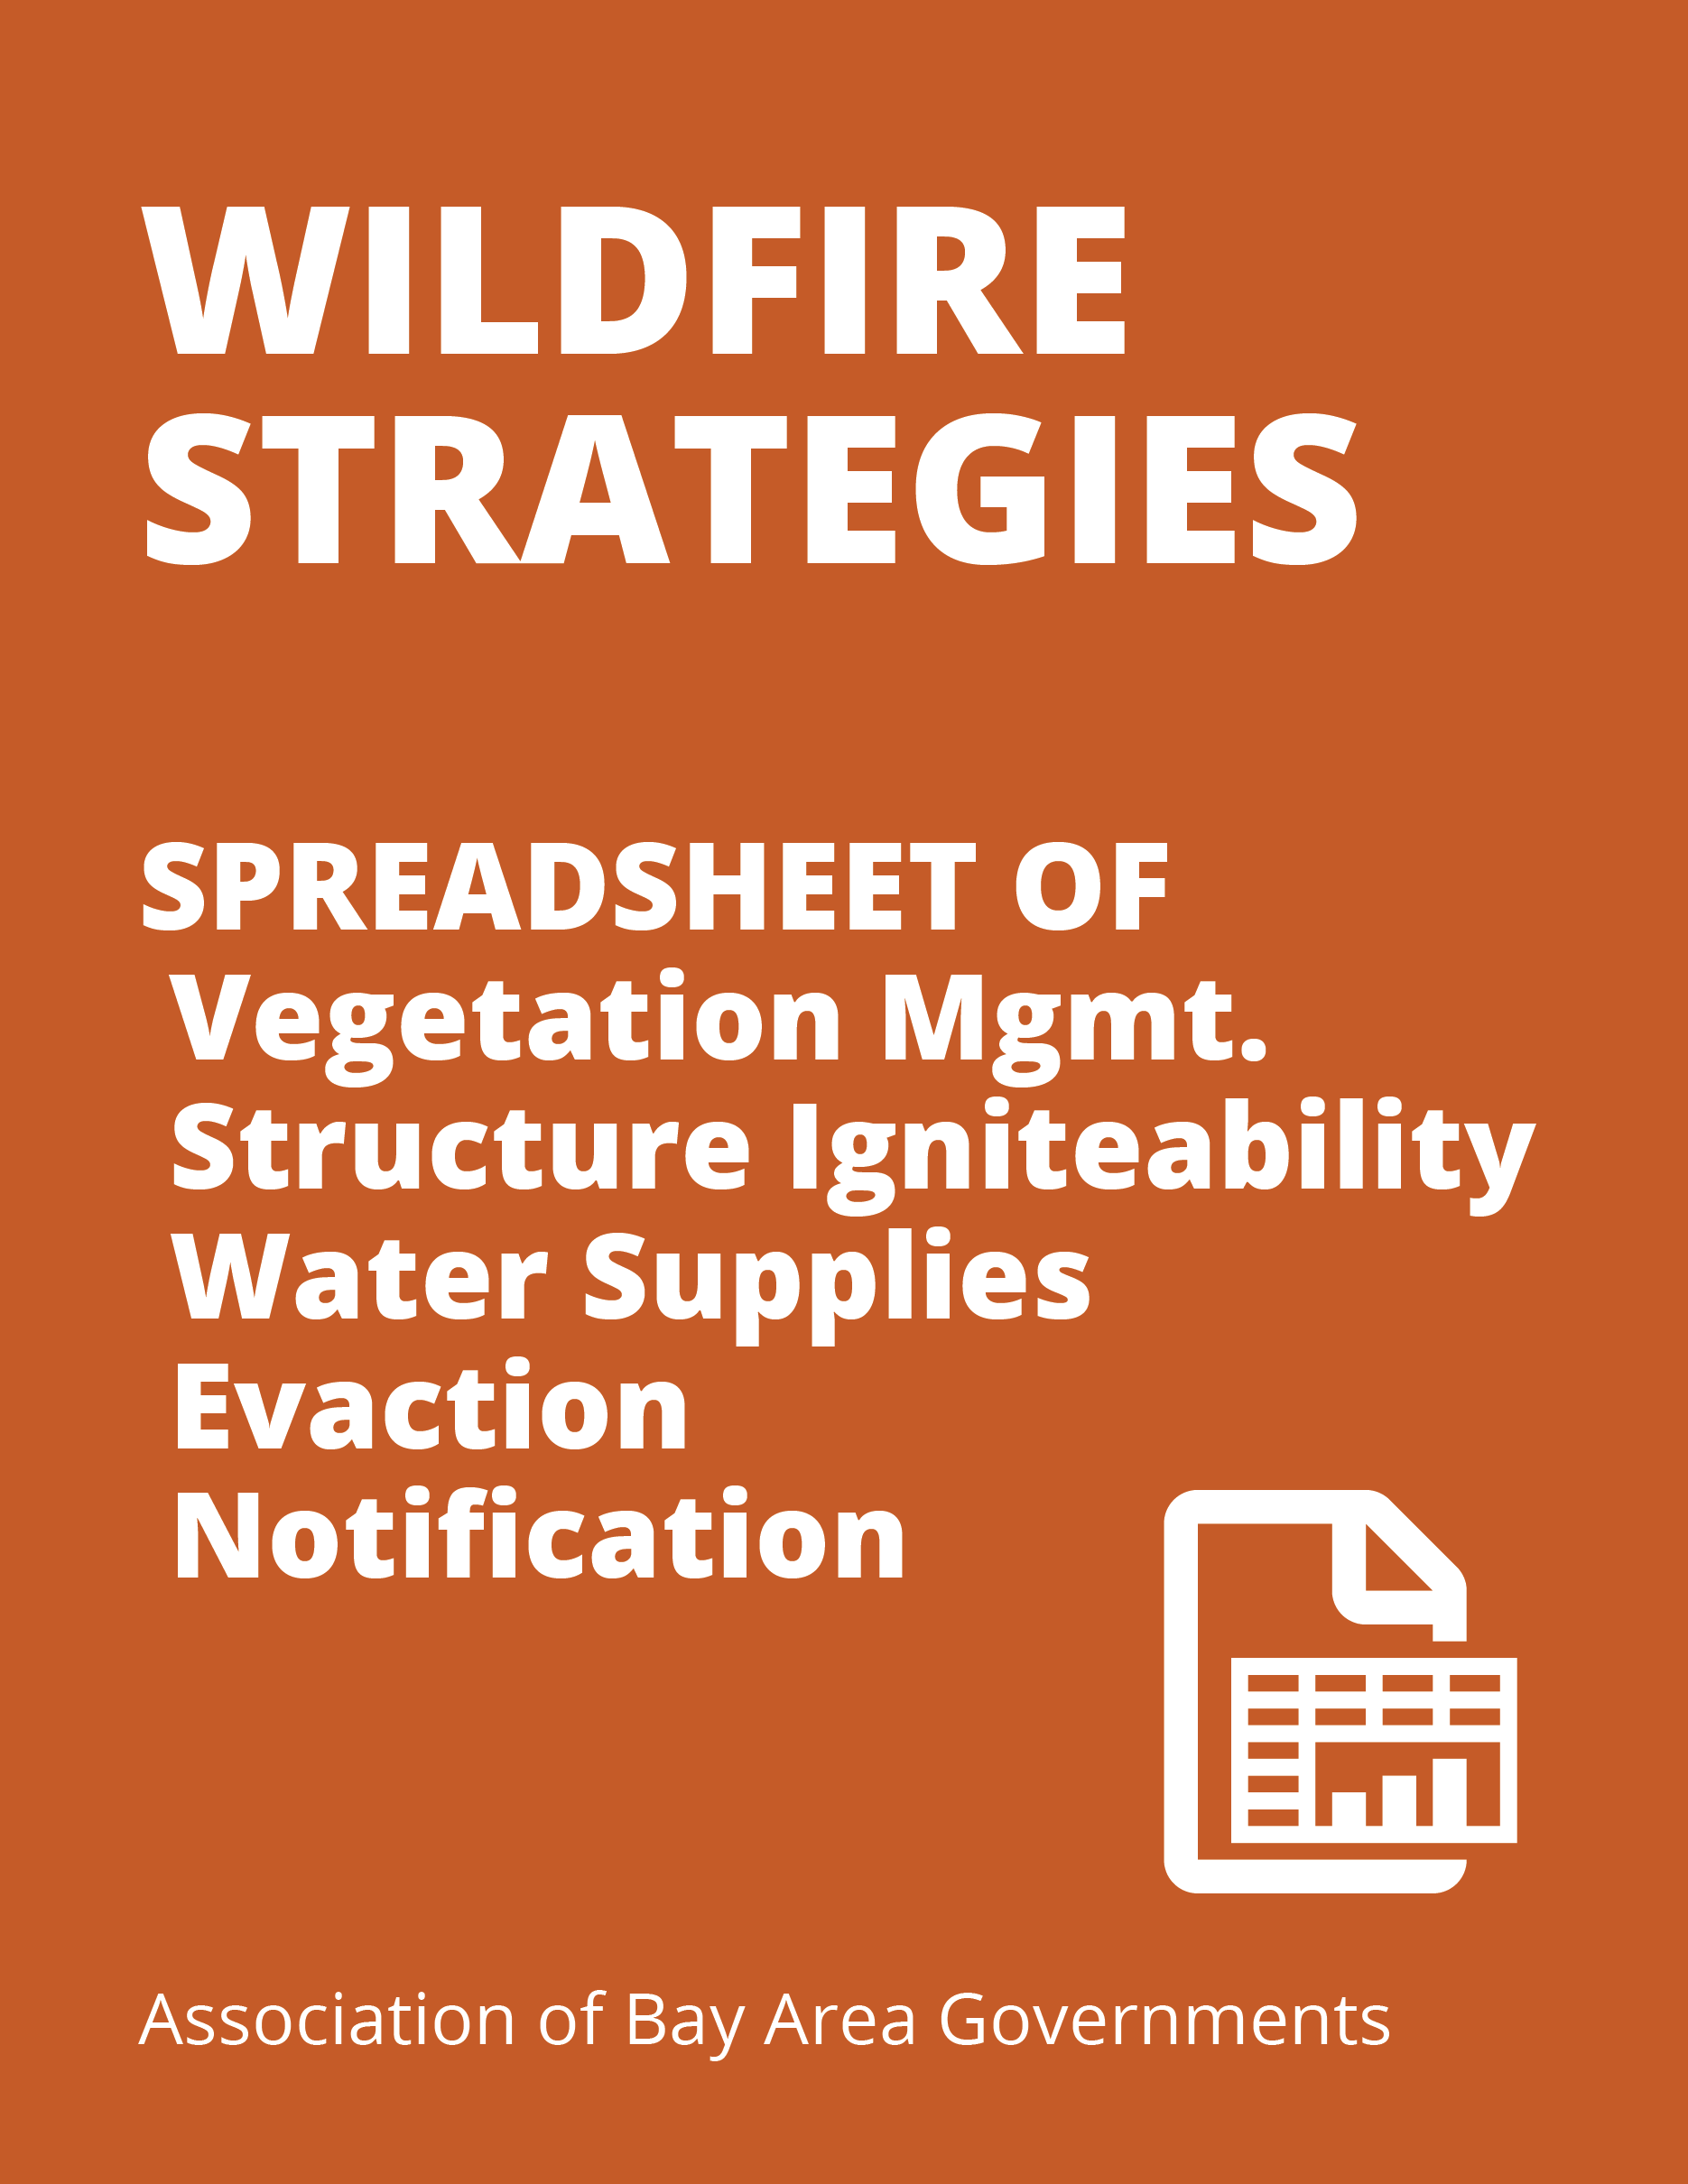 Wildfires Strategy Spreadsheet